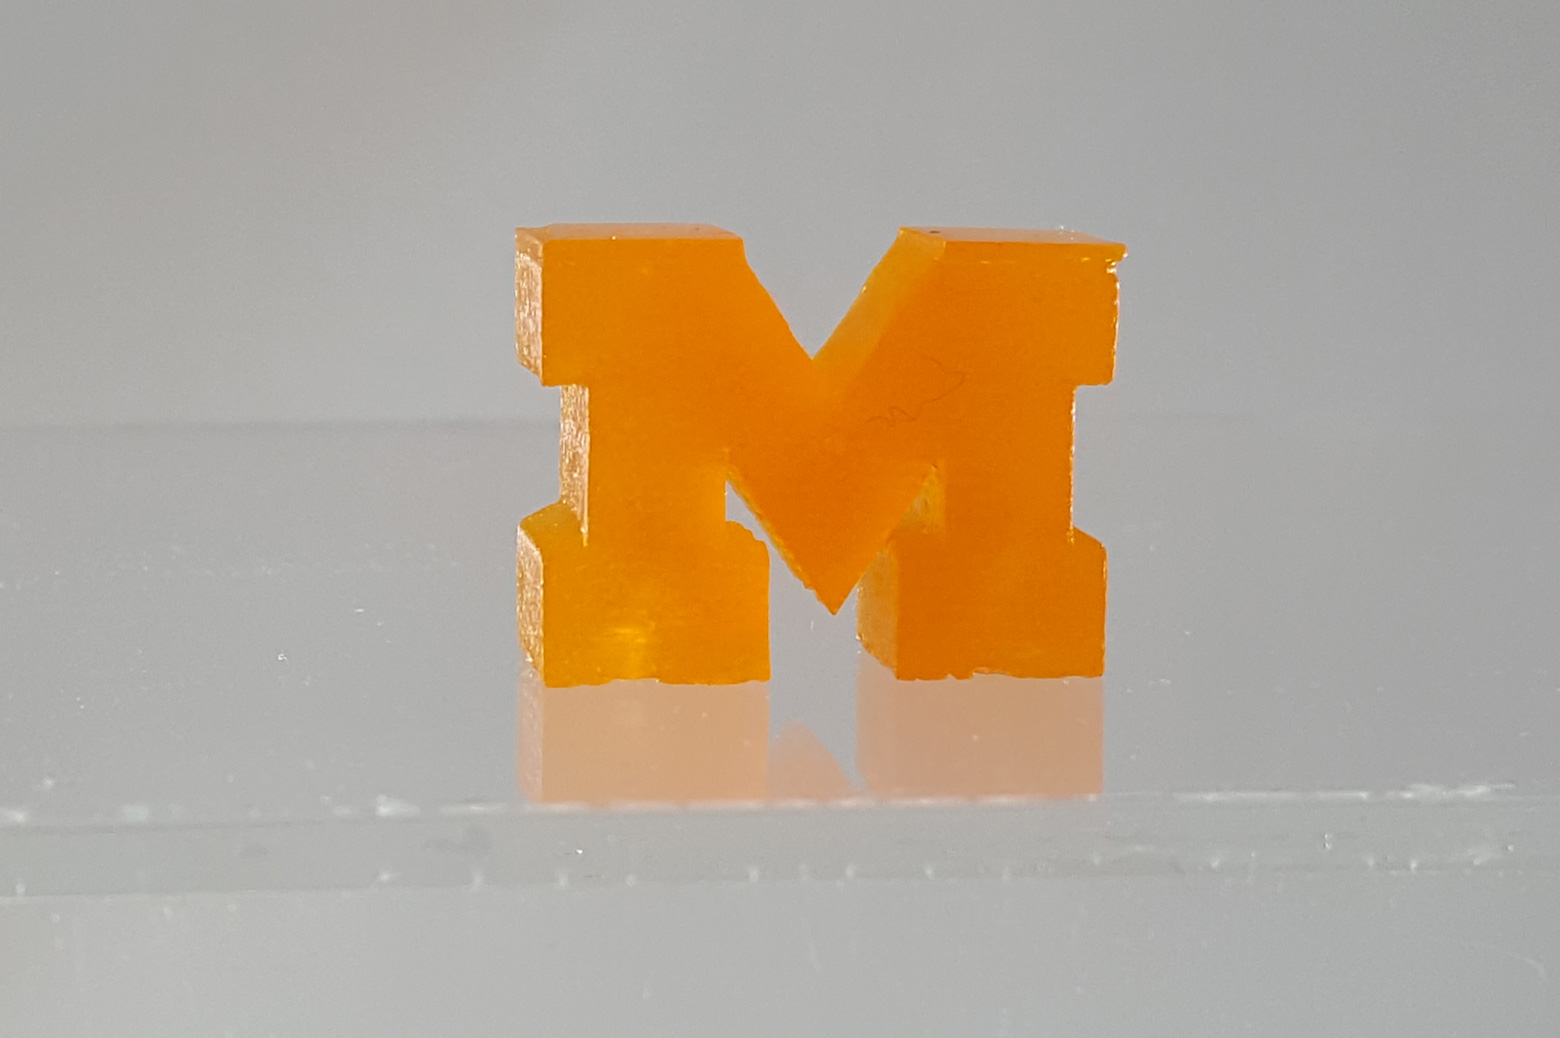 A 3D printed block M made from resin